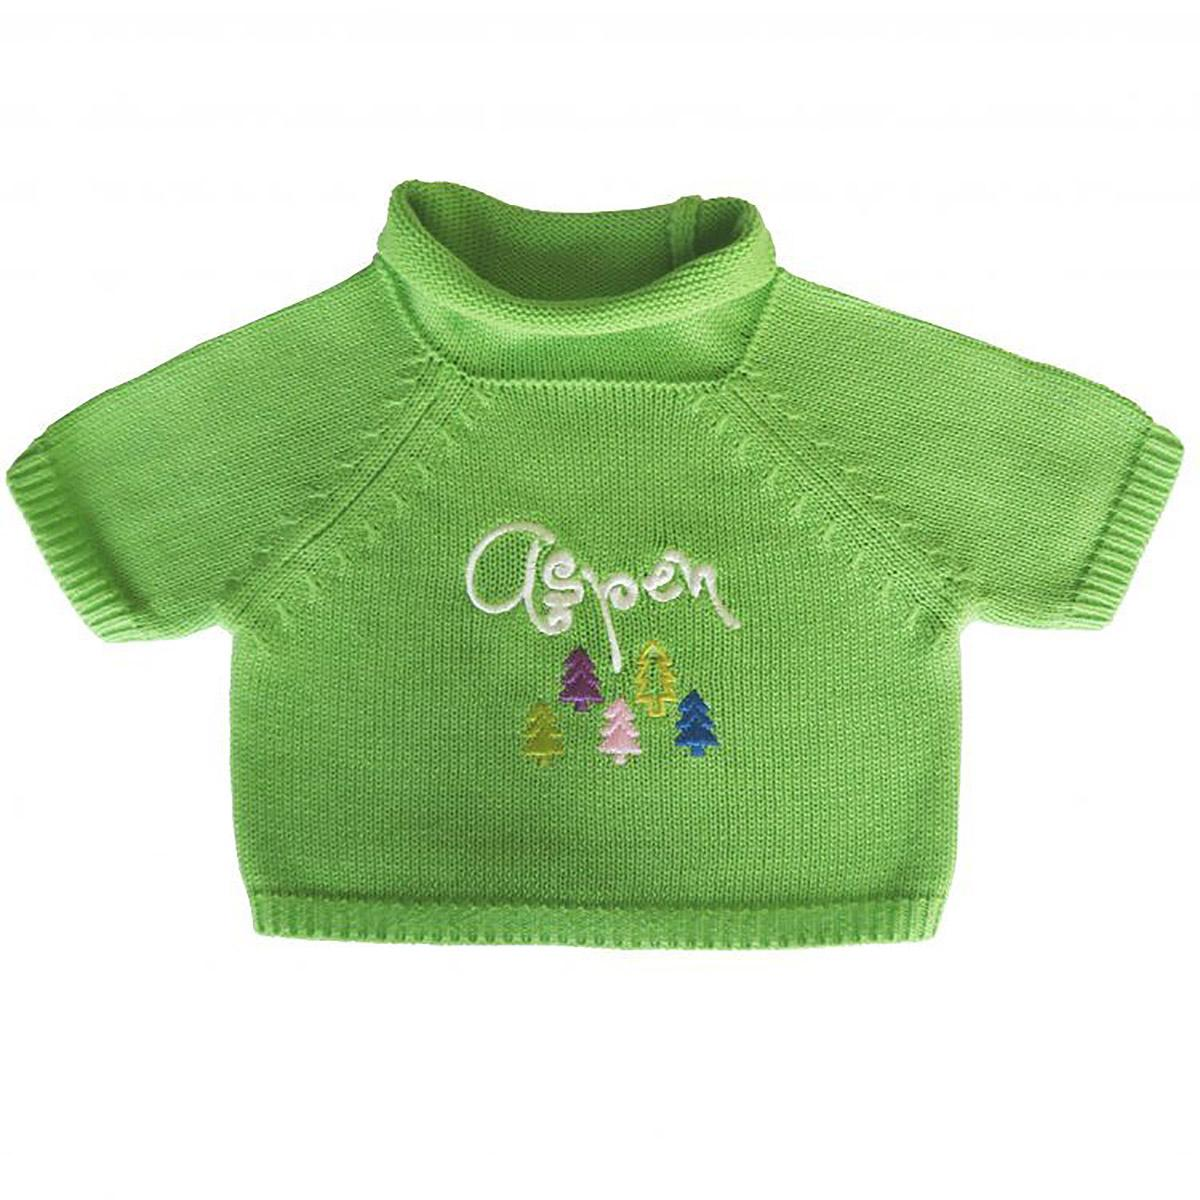 Aspen Dog Sweater by Beverly Hills Dog - Green